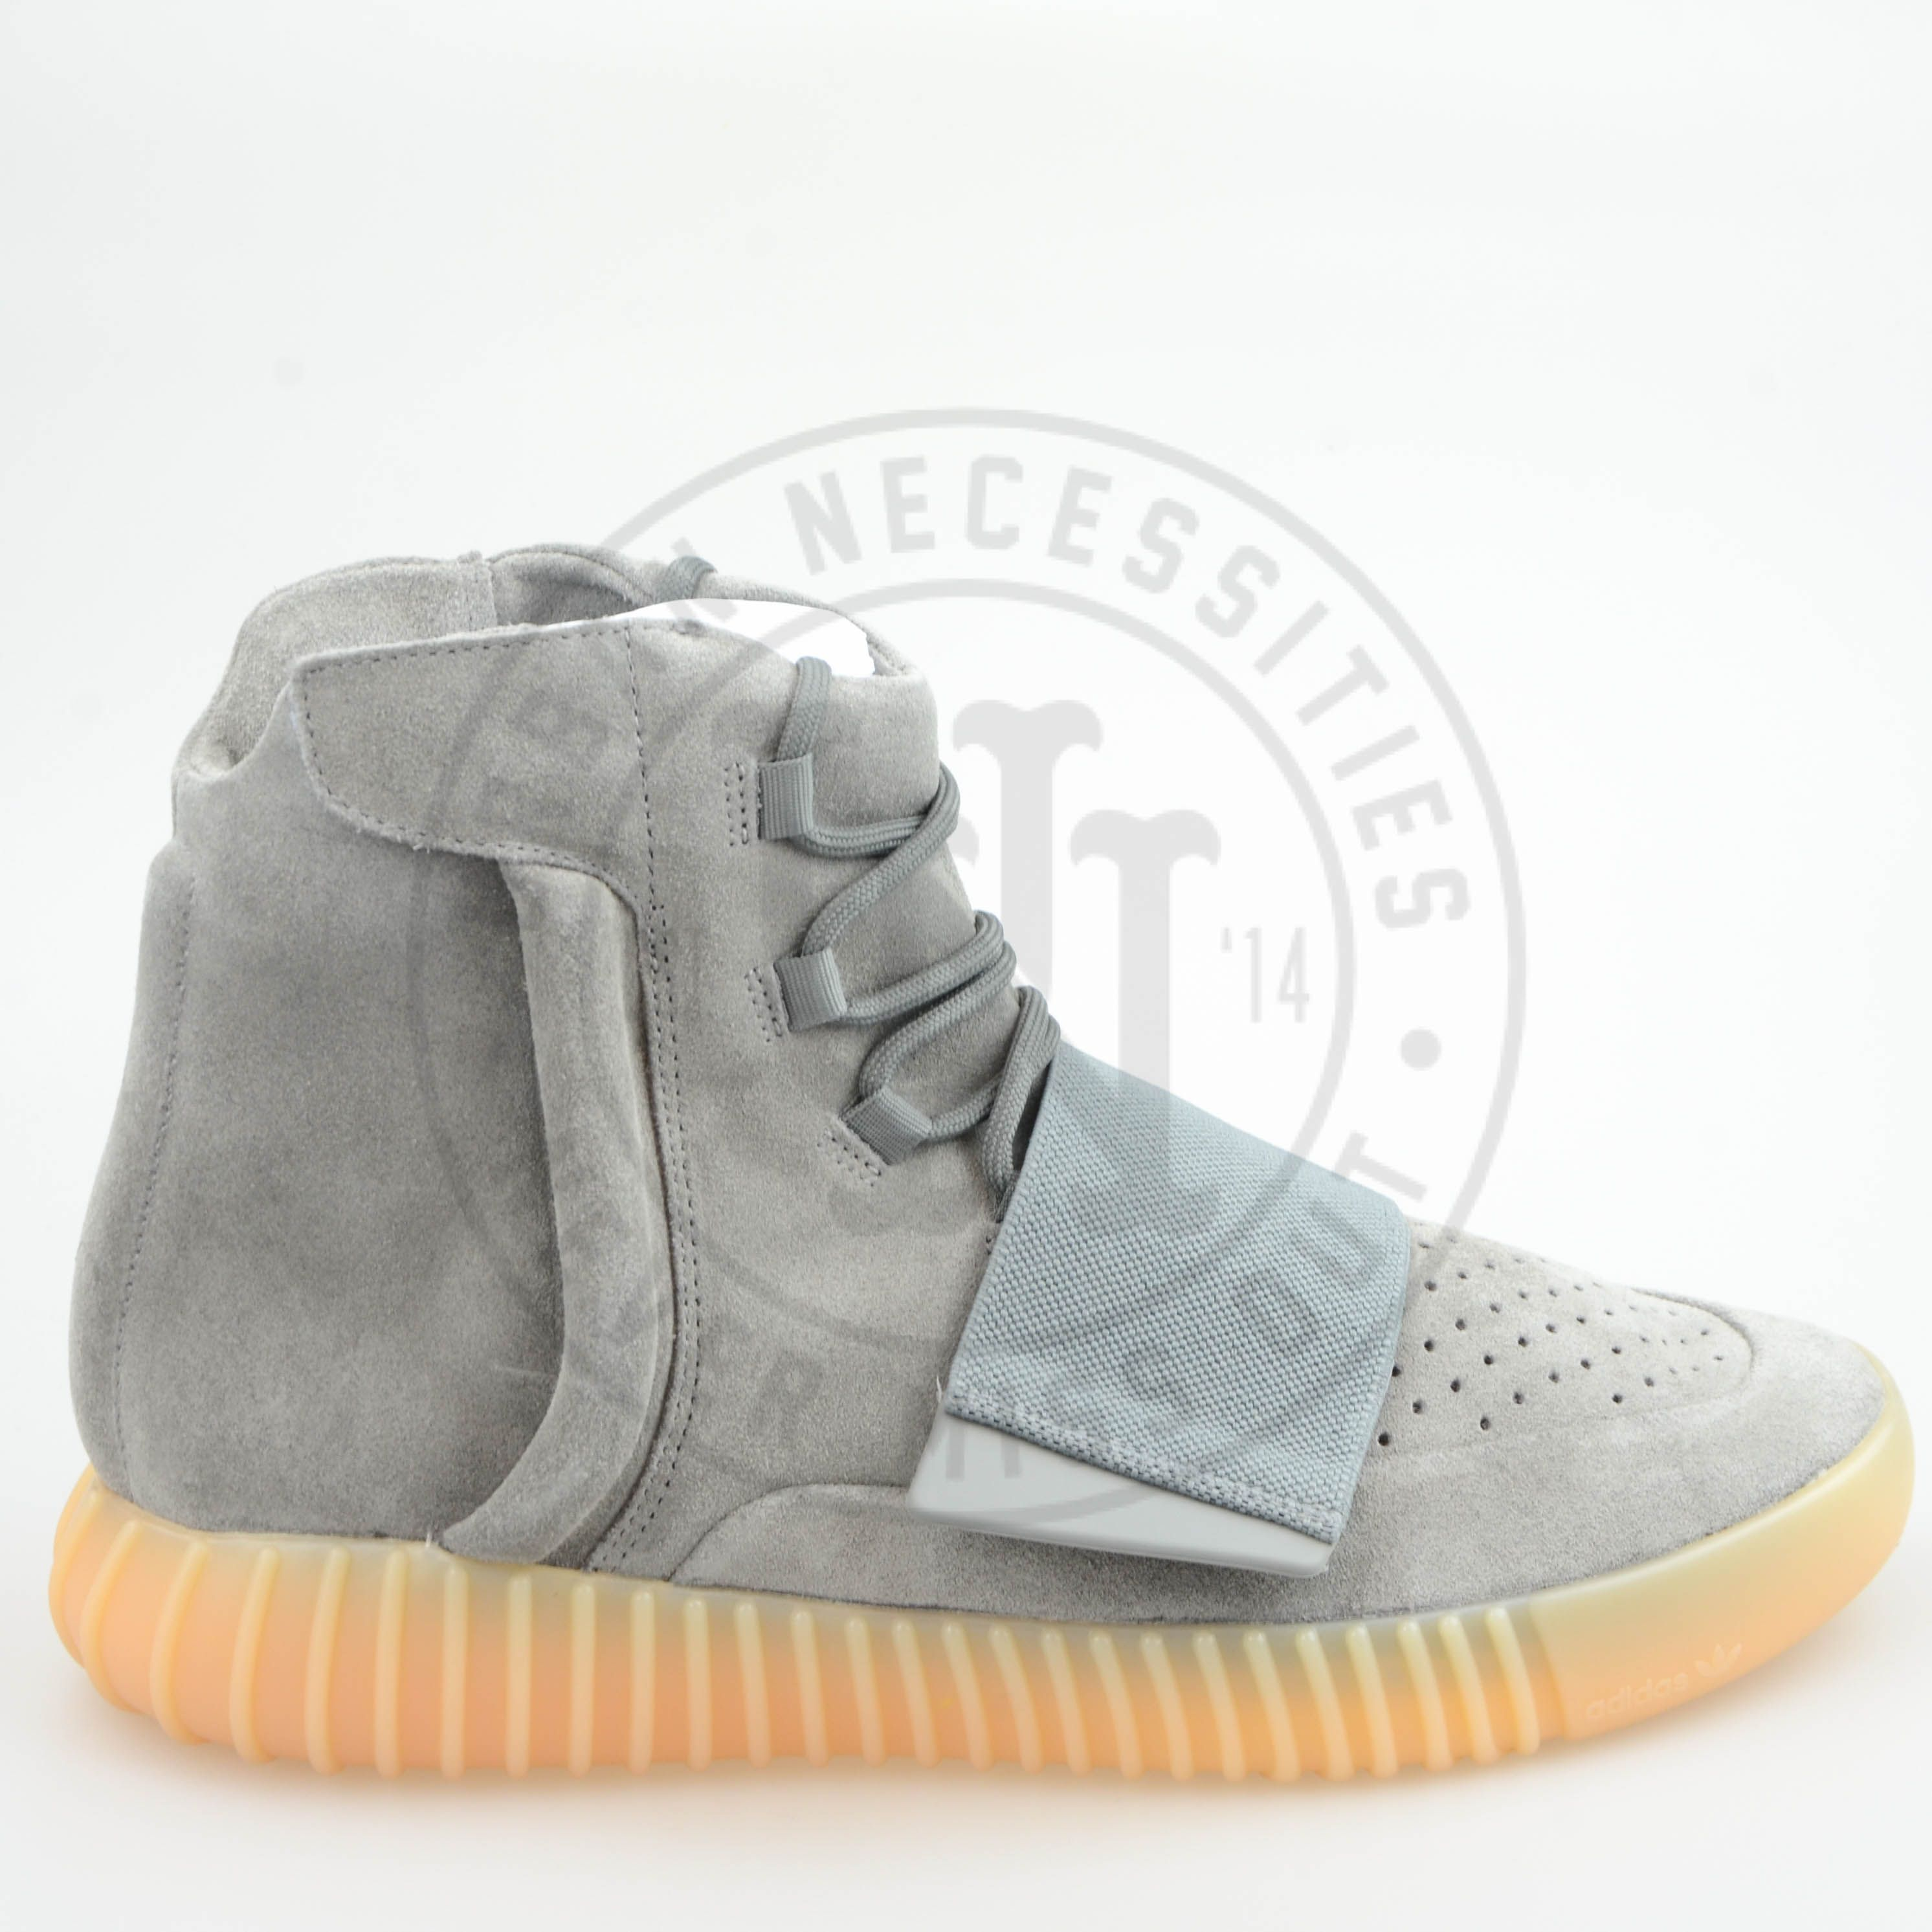 ADIDAS 750 BOOST GREY/GUM (With images) Adidas yeezy 750